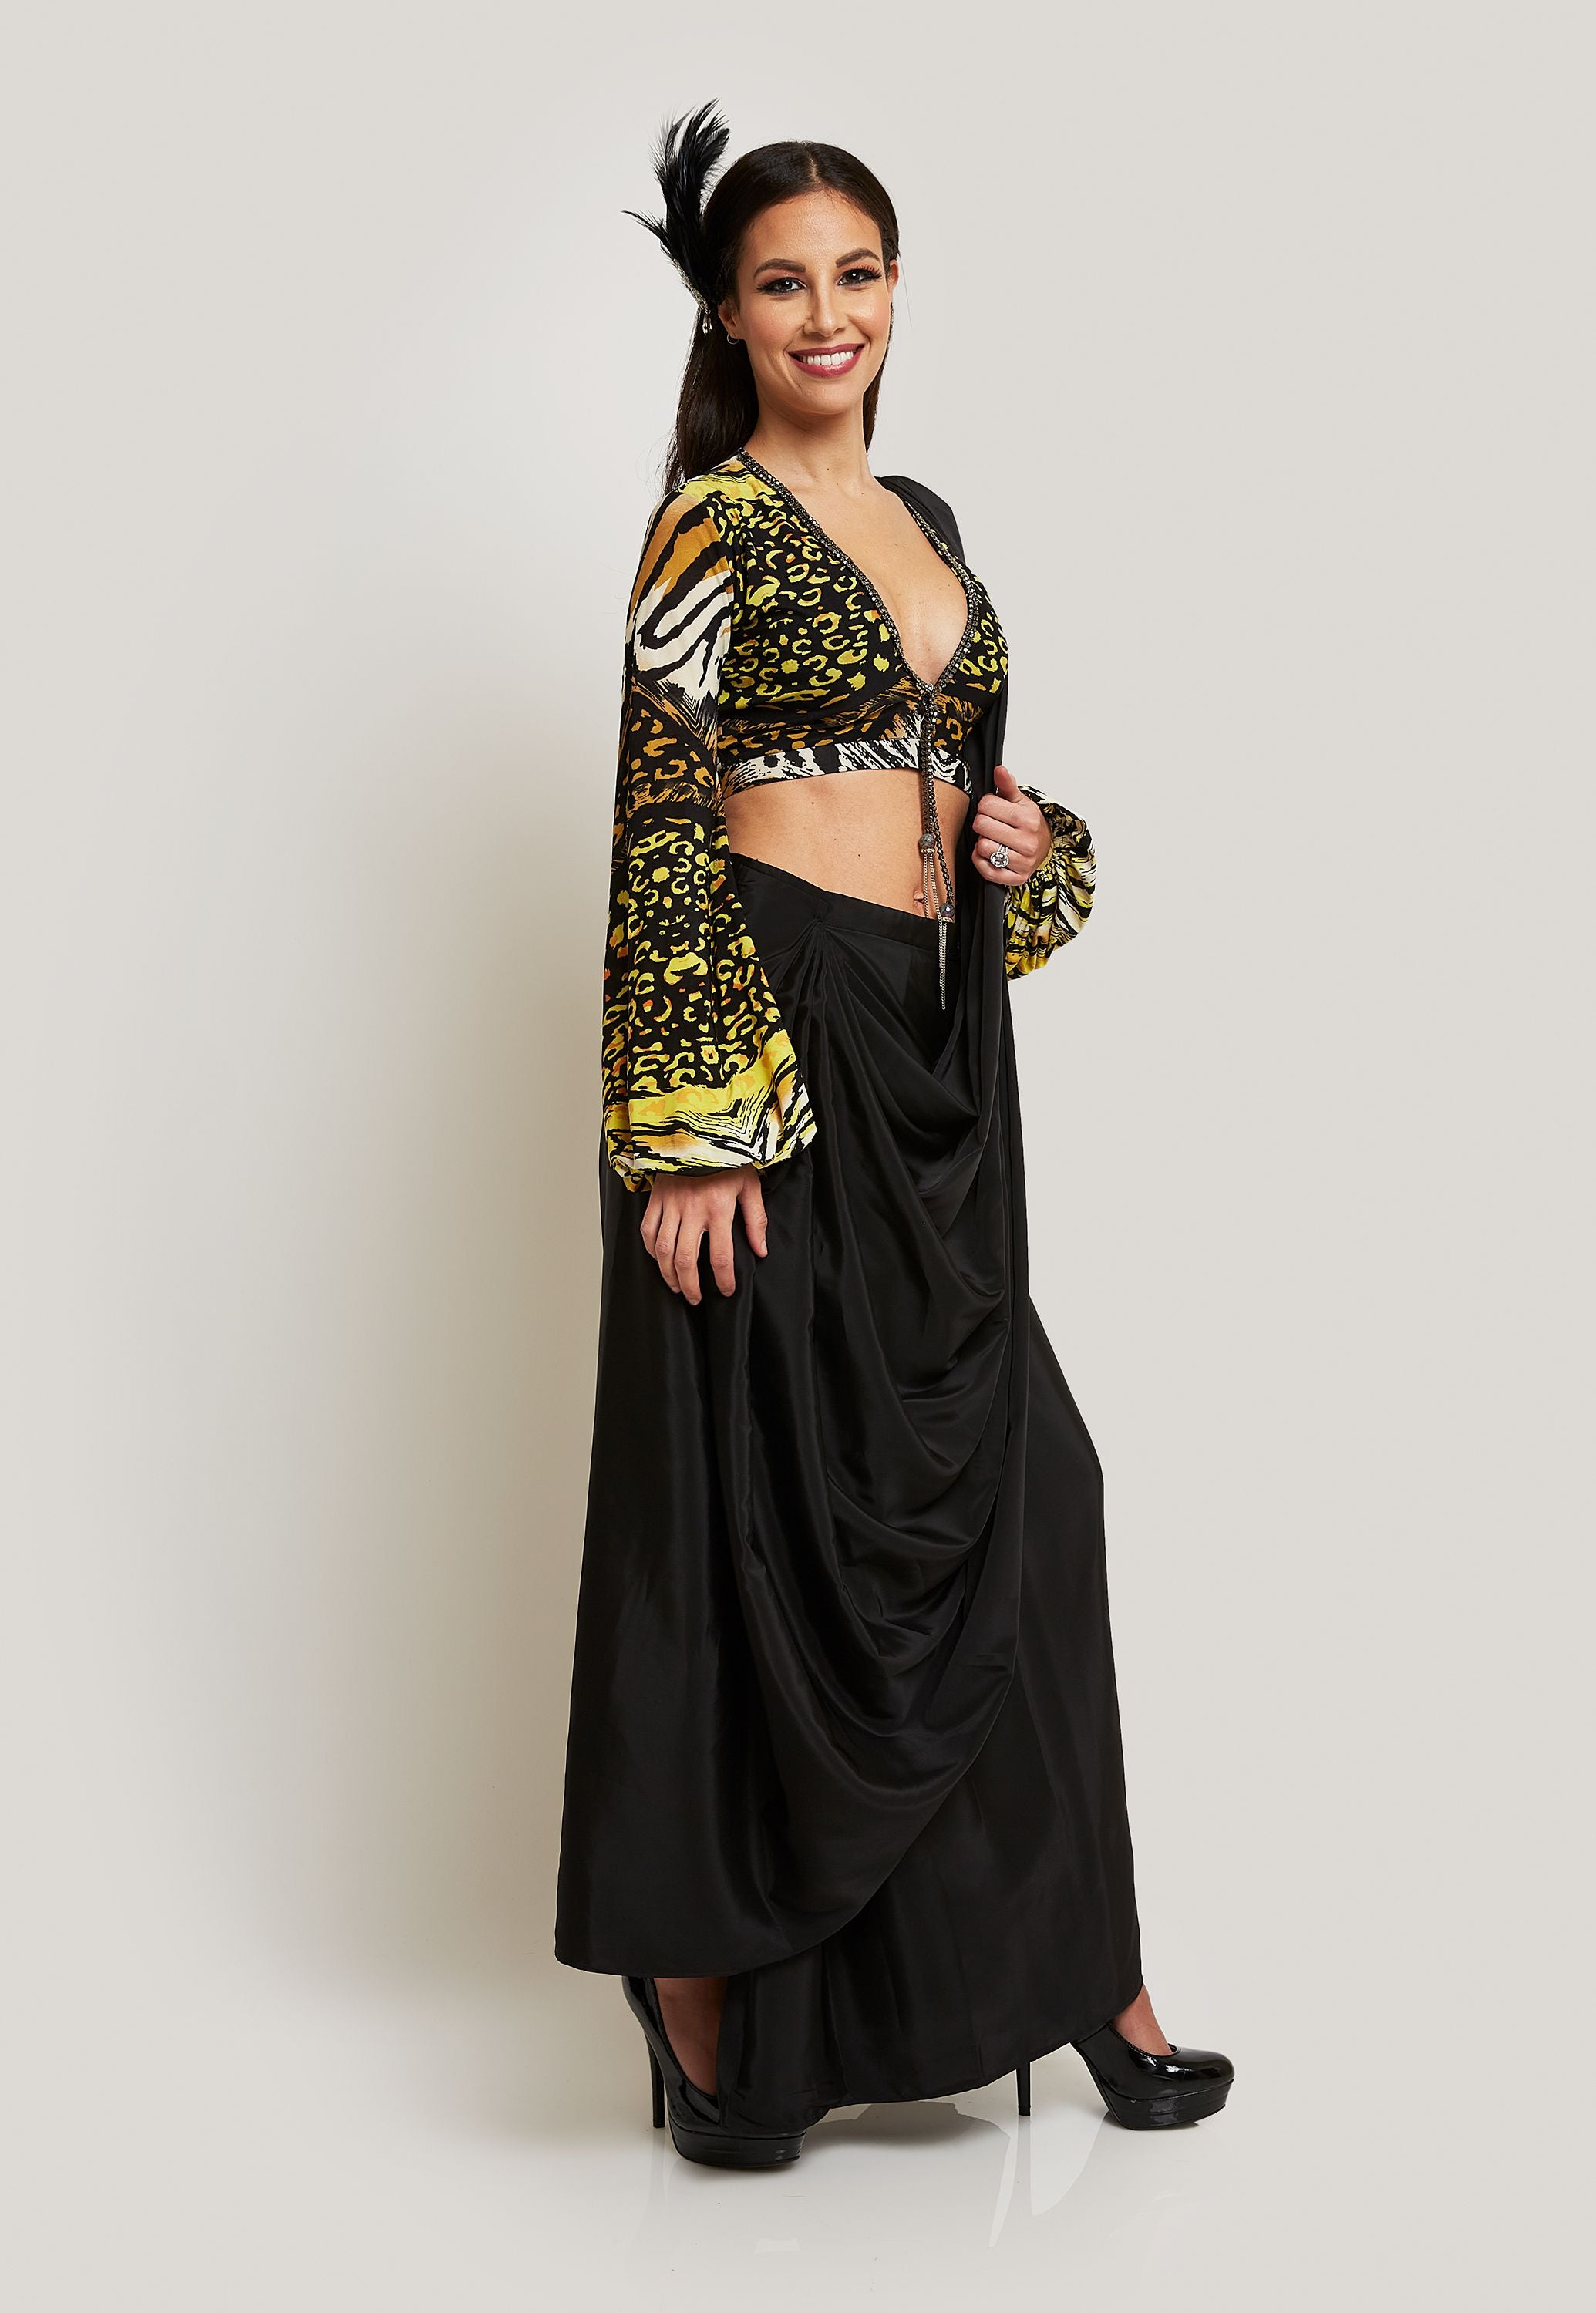 ANIMAL PRINT BLOUSE WITH A STITCHED SAREE AND PANTS